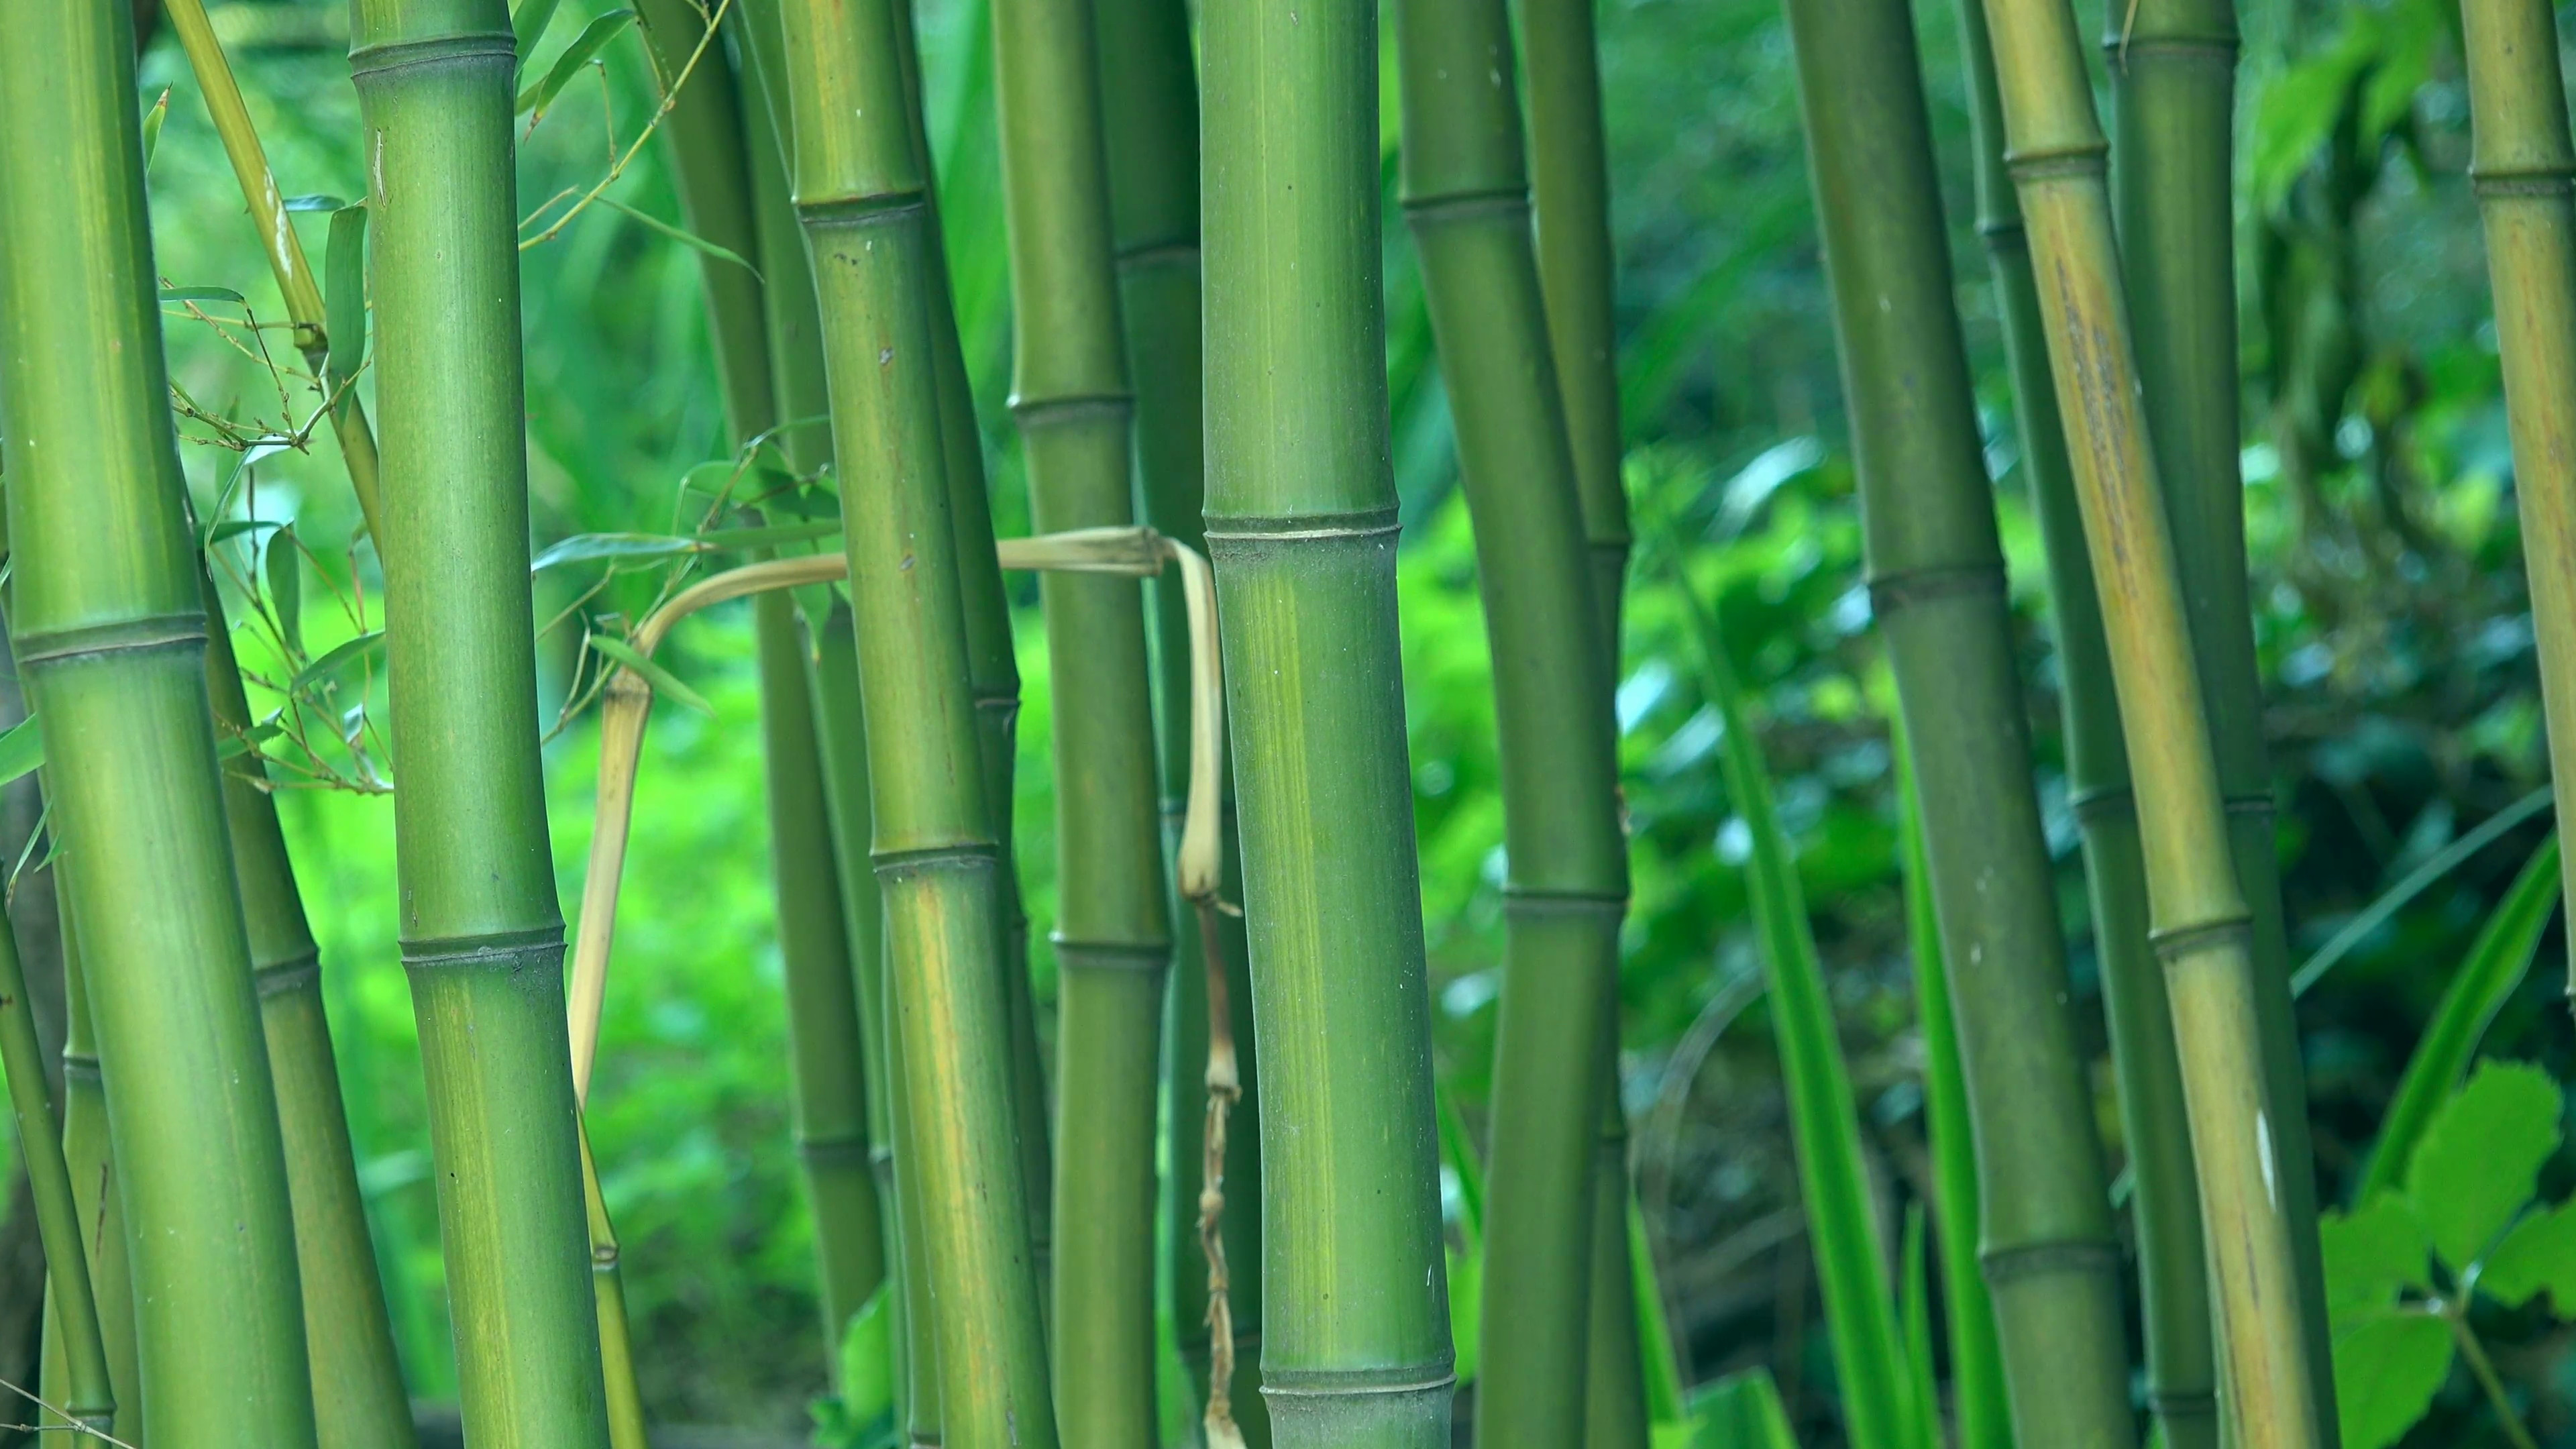 3840x2160 Green bamboo trees as background, bamboo forest detail, 4k uhd footage,  ,